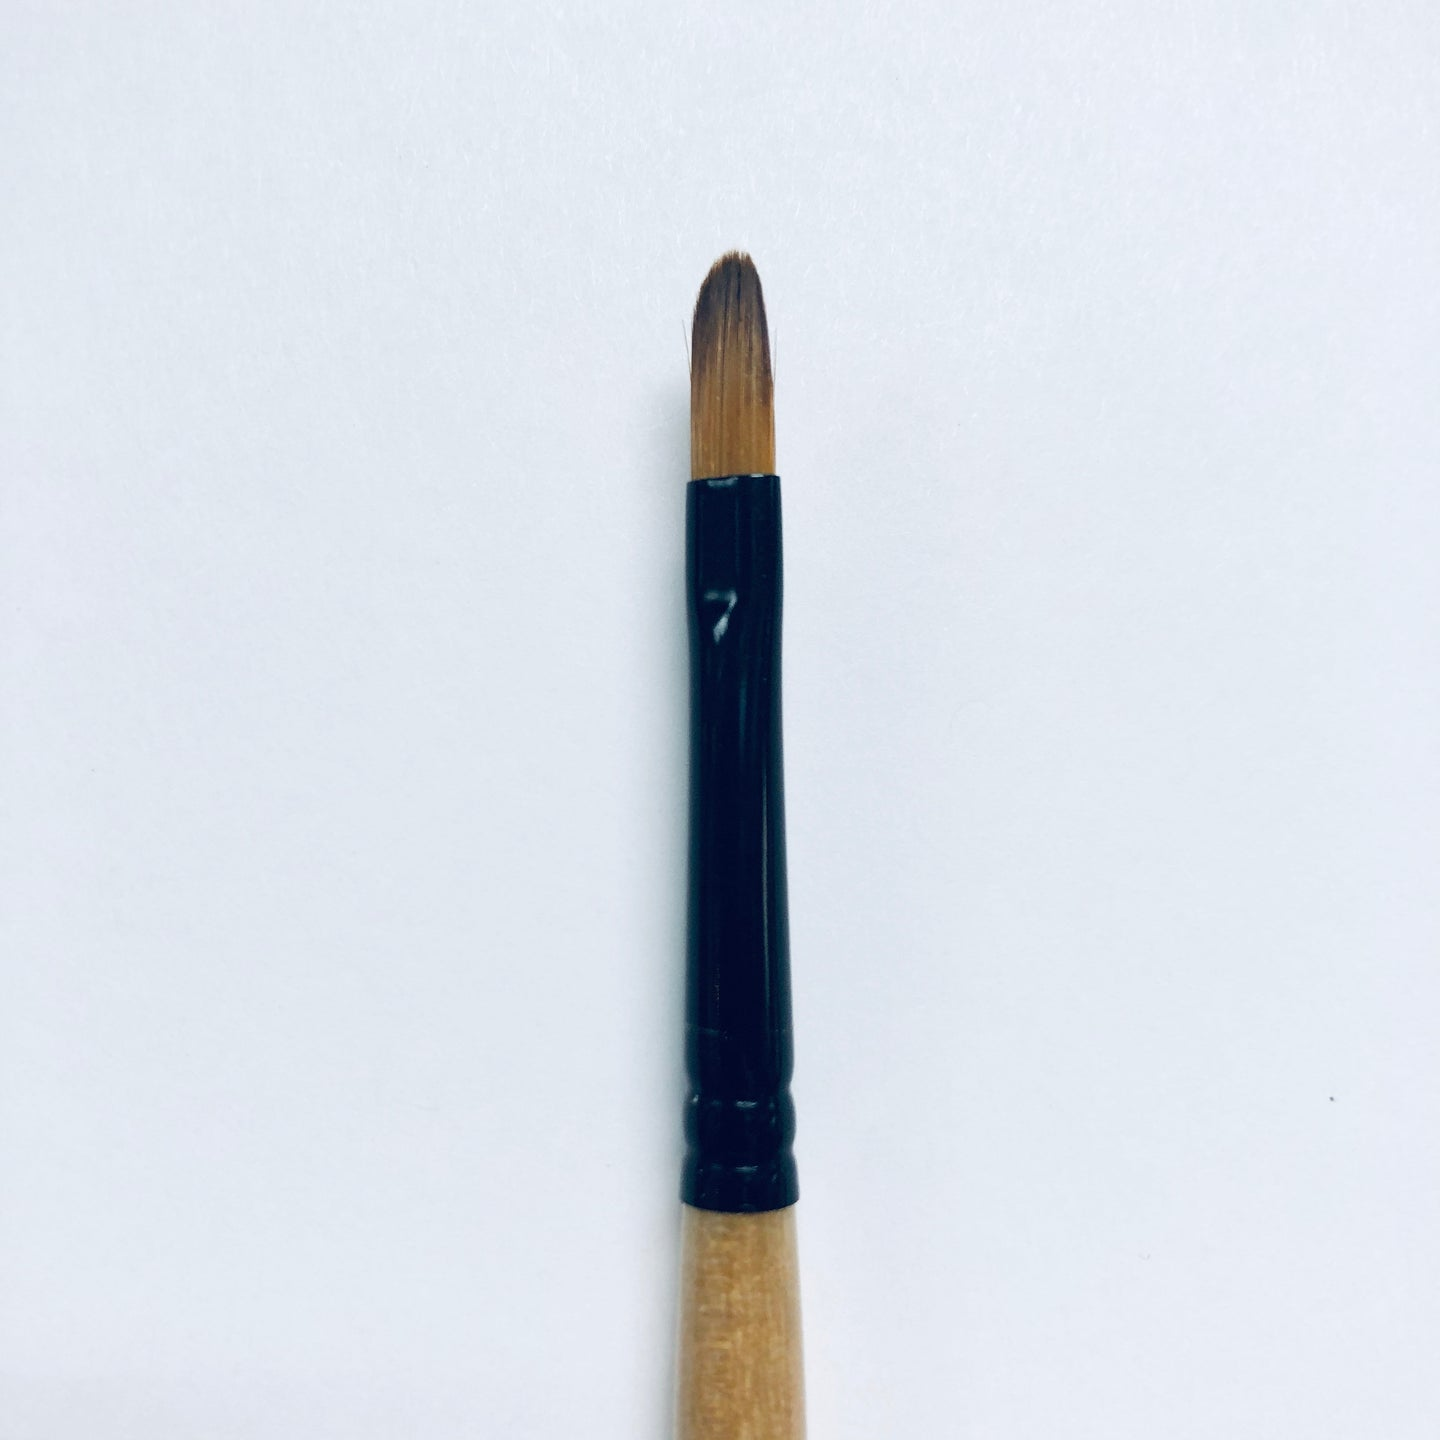 Dynasty Black Gold Paint Brush 206FIL Filbert #4 12241